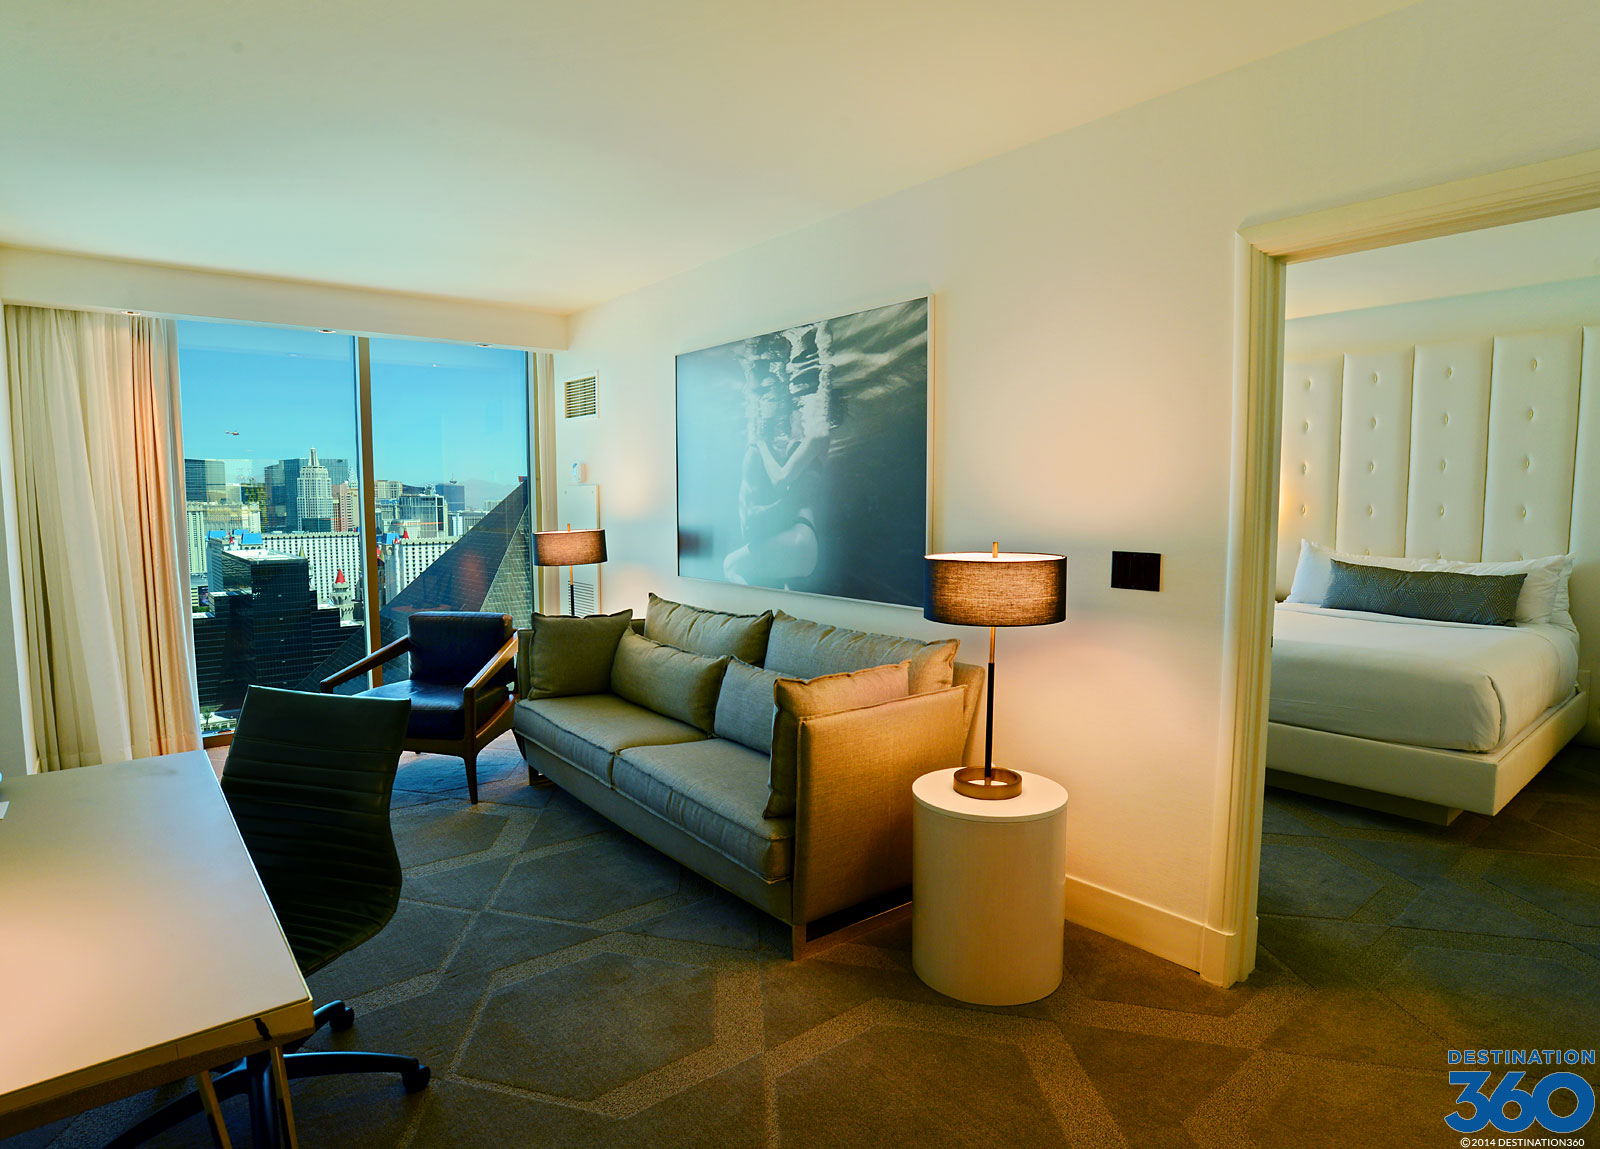 Cosmo 2 Bedroom City Suite delano rooms - las vegas all-suite hotel - mandalay bay suites